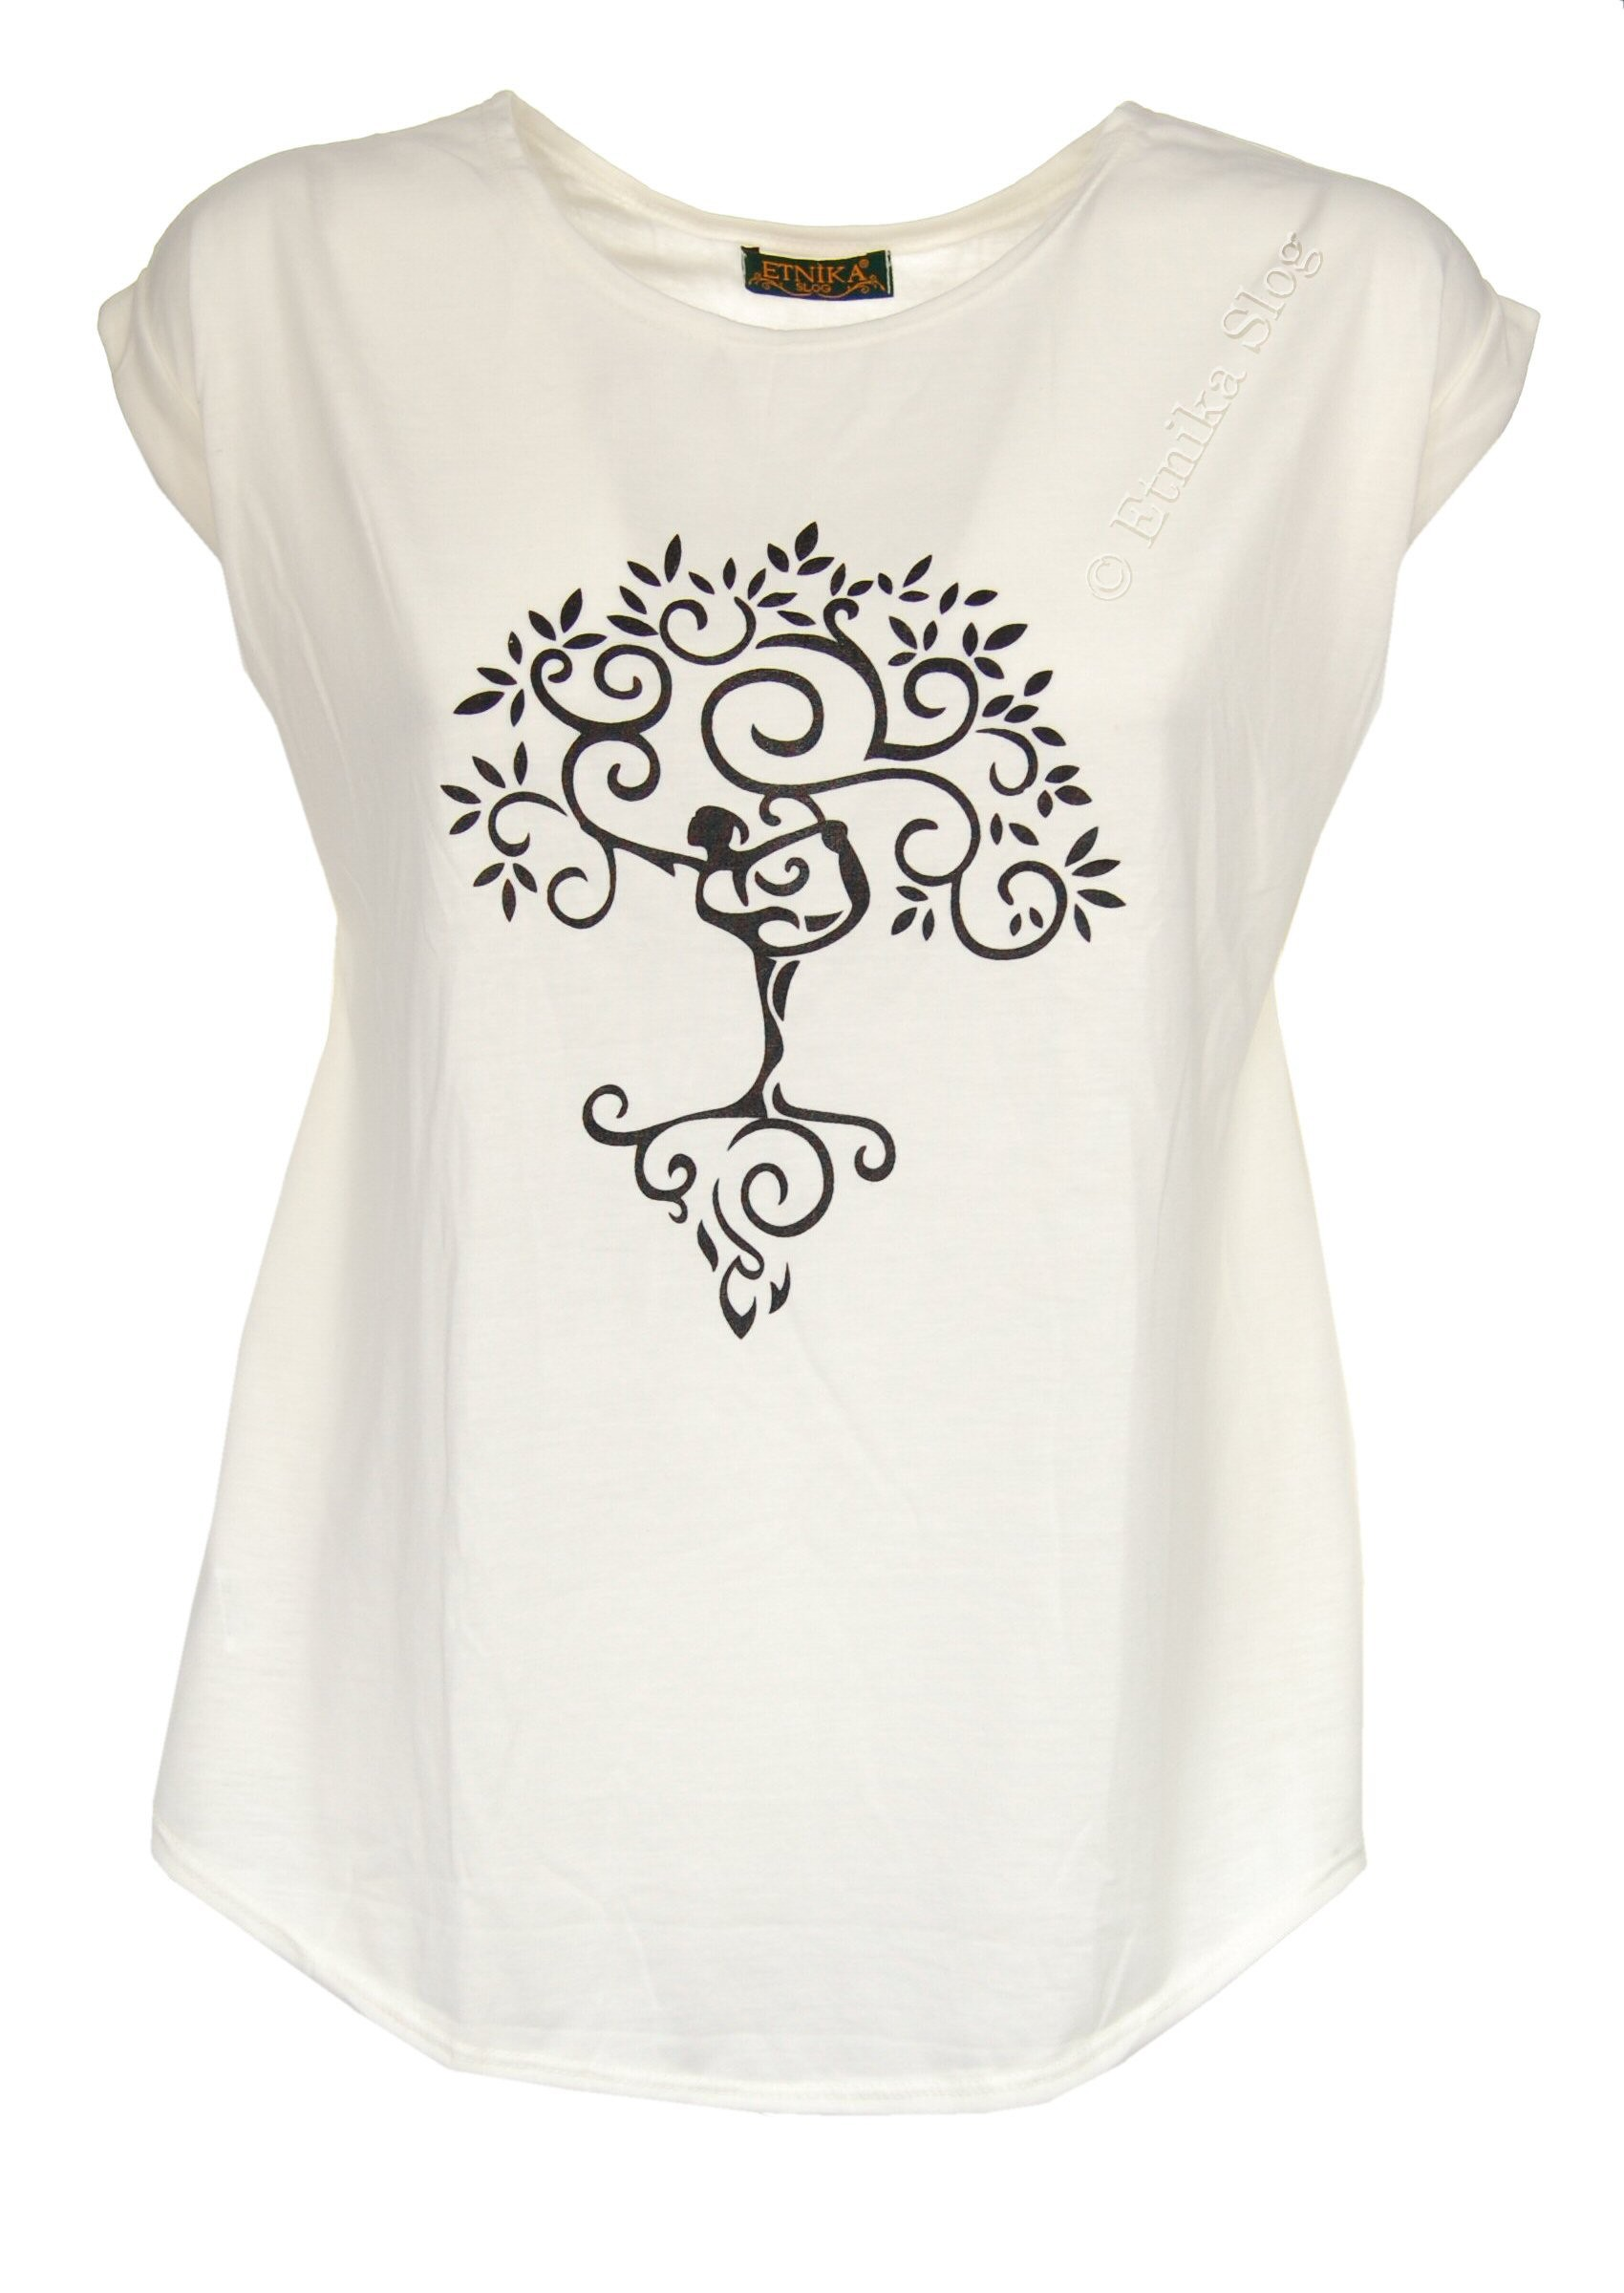 PRINTED T-SHIRTS AB-BCT08-22 - Oriente Import S.r.l.